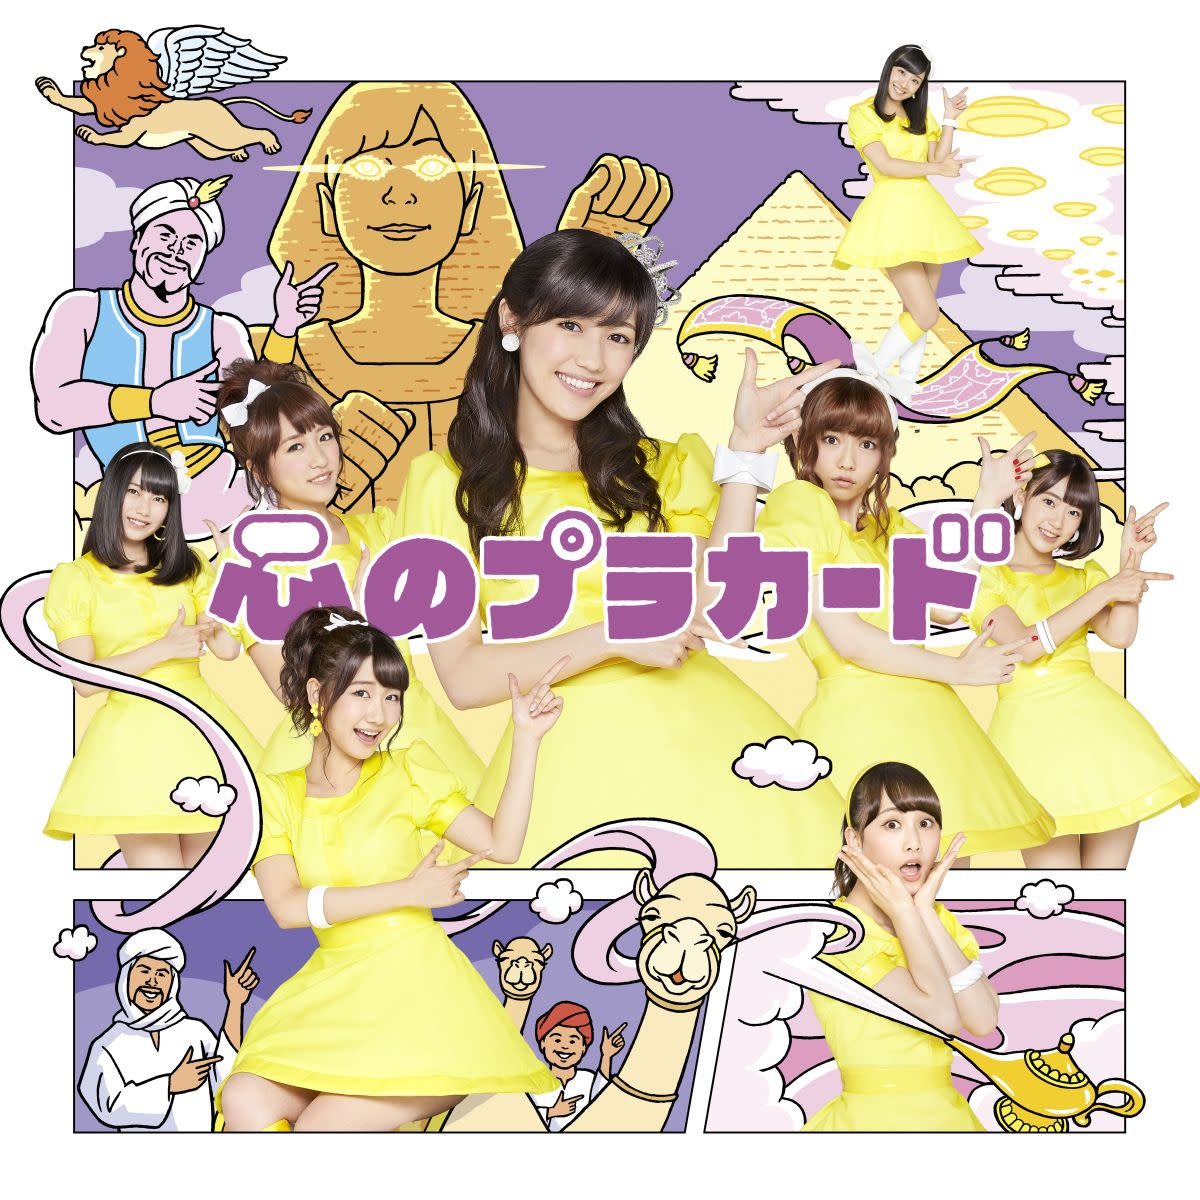 At the center of the cover is Mayu Watanabe. To her left is Minami Takahashi followed by Yui Yokoyama. Rena Matsui formerly of the group SKE48 is at the very lower right of the photo.